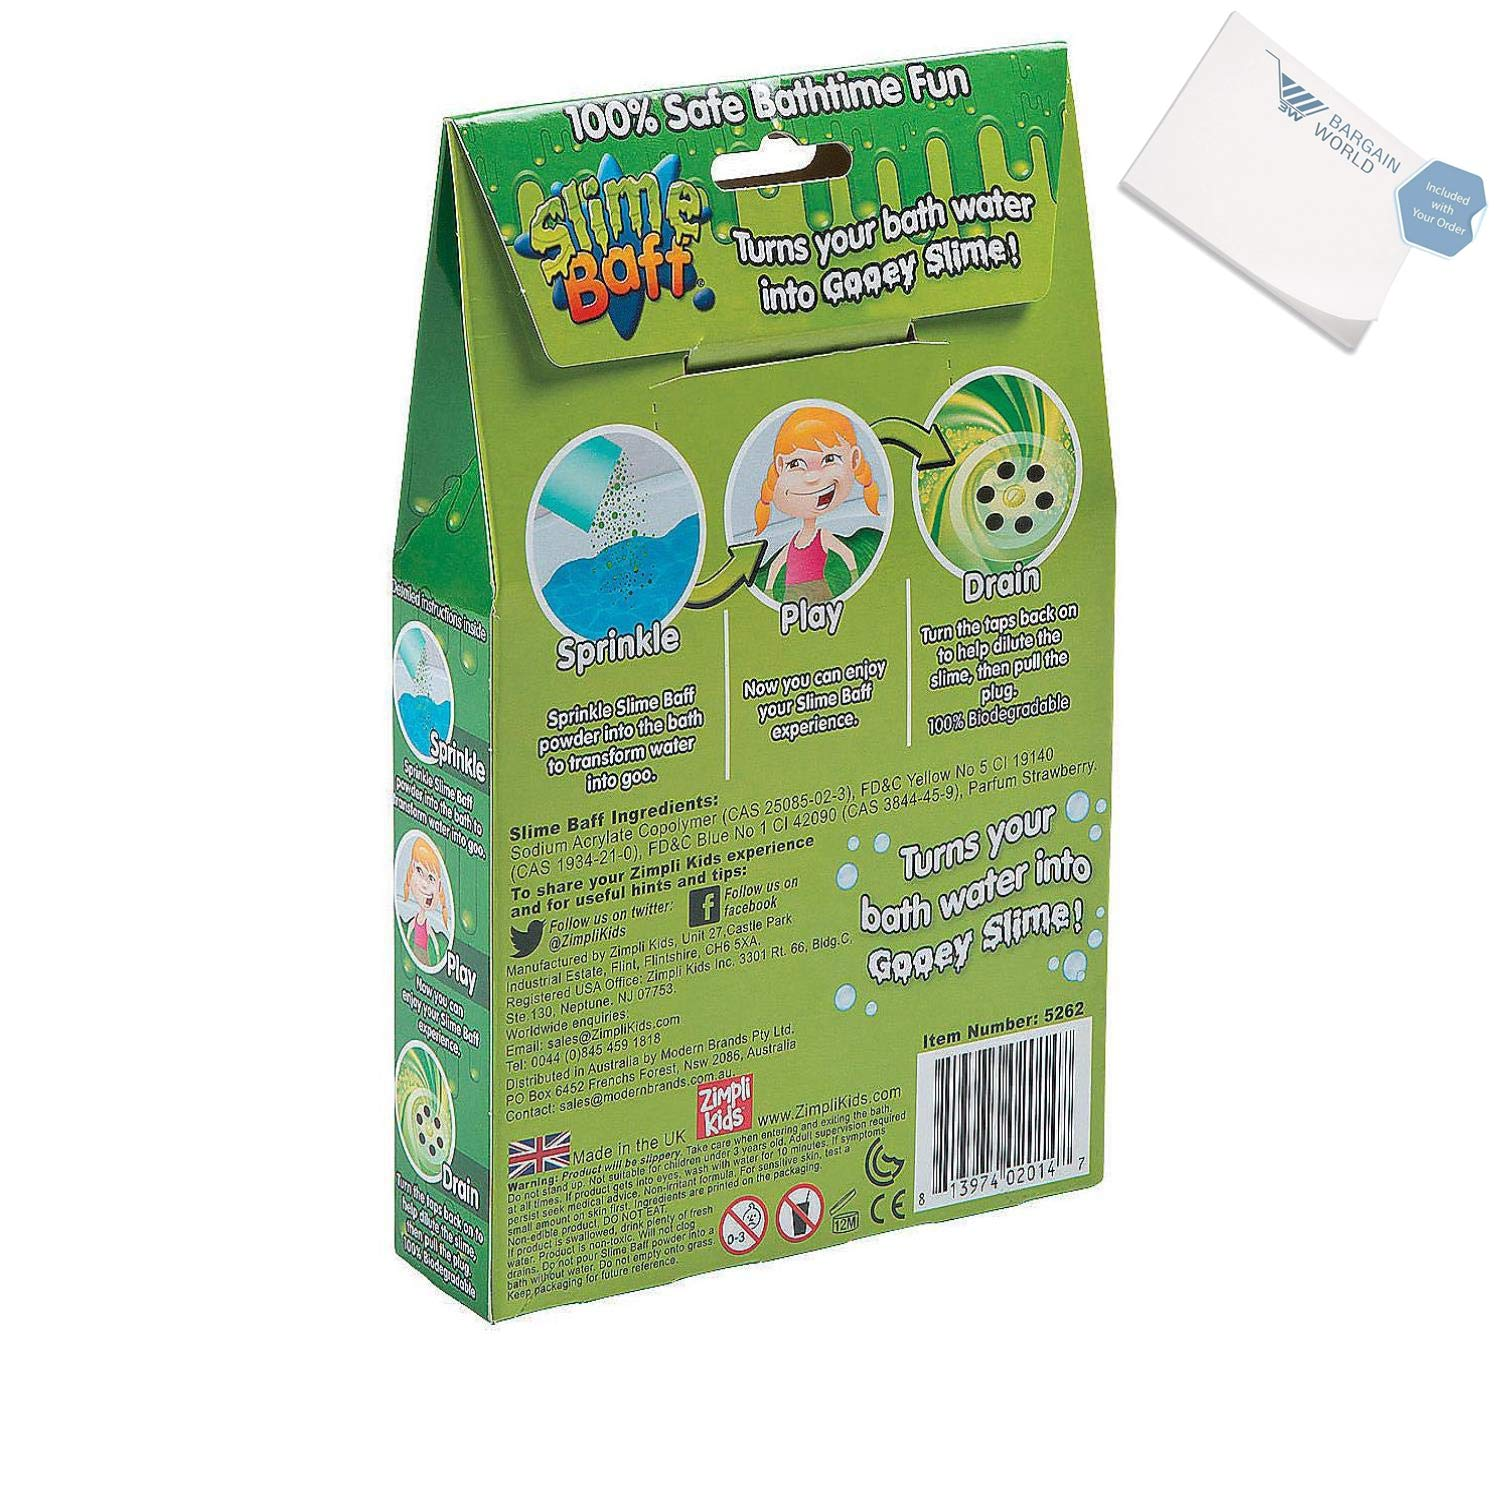 Bargain World Slime Baff (With Sticky Notes) by Bargain World (Image #2)